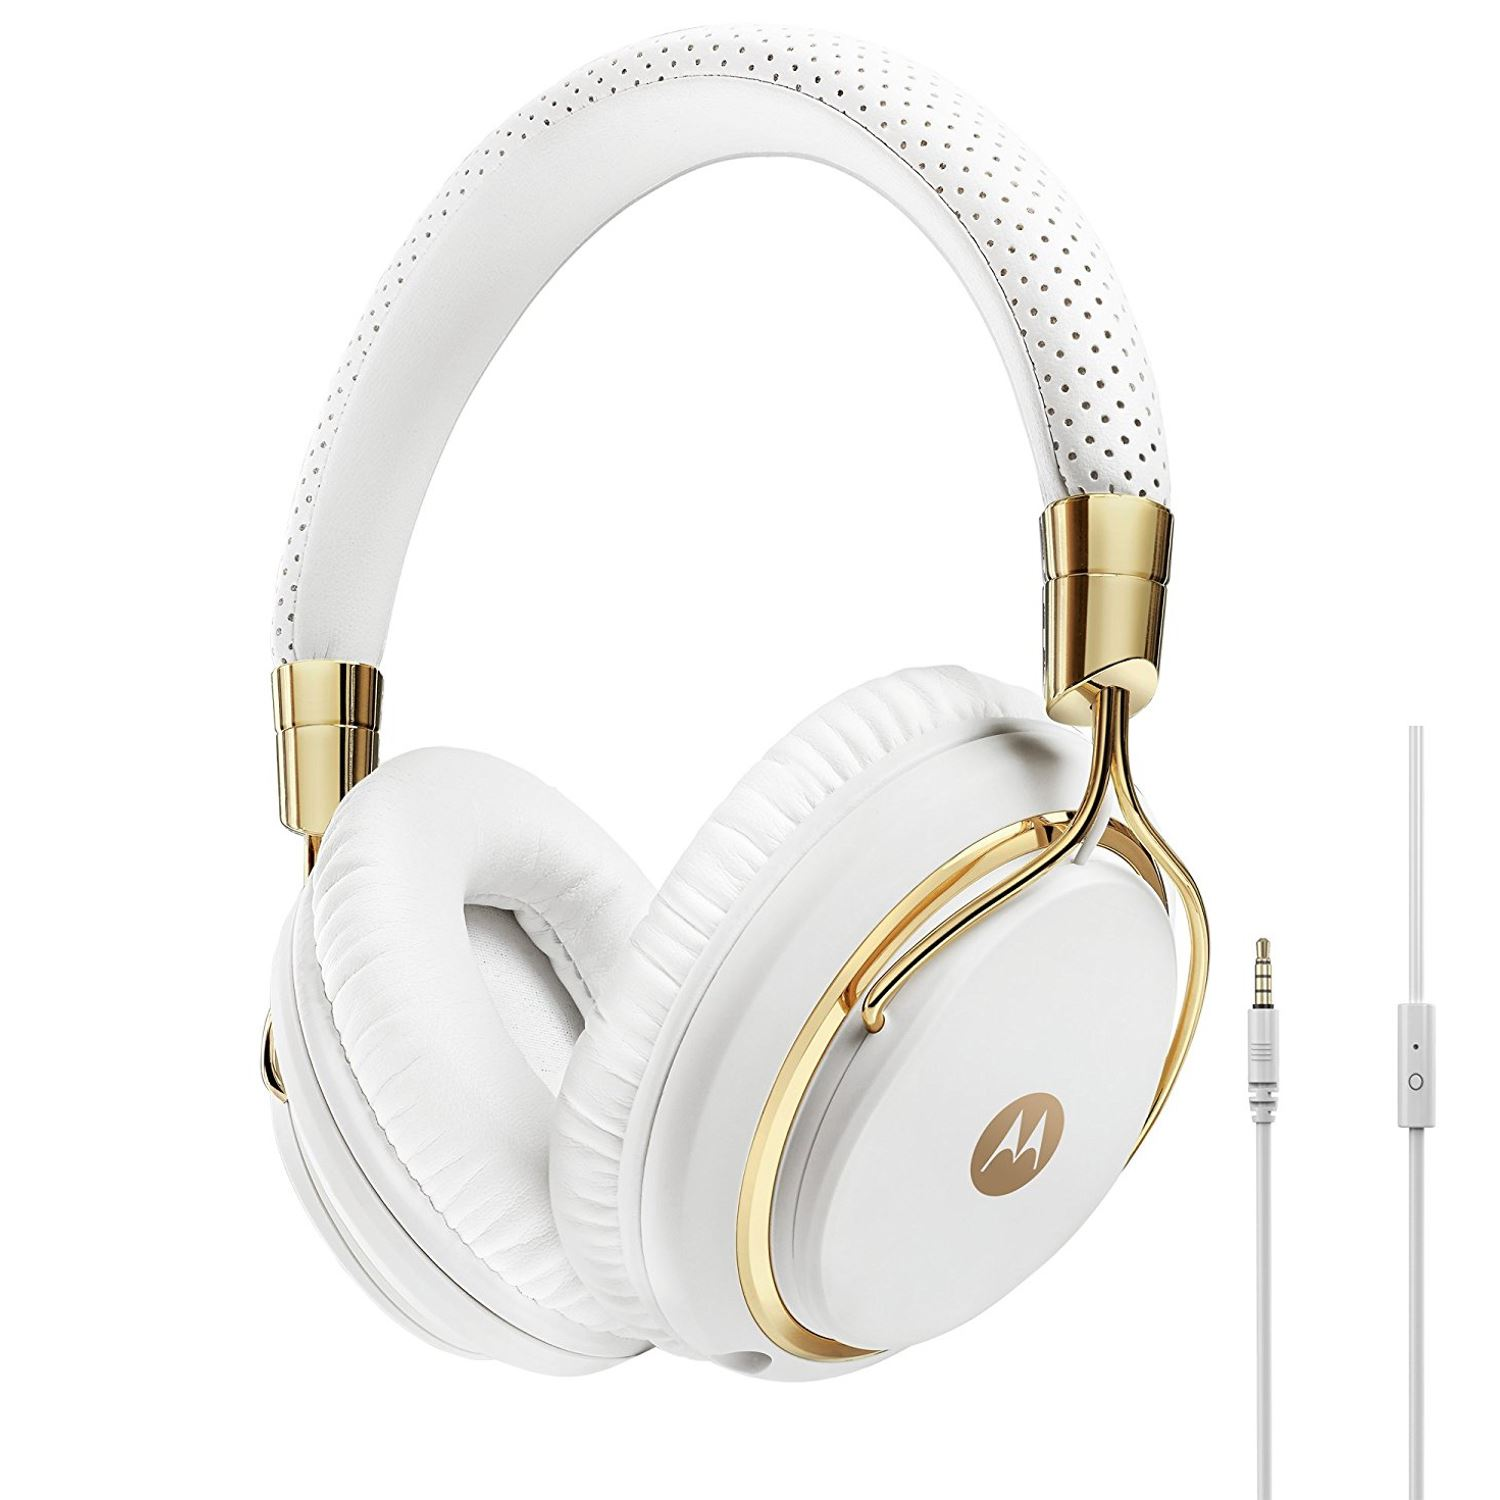 motorola pulse max headphones. motorola pulse m series over-ear wired headphone with in-line microphone - white/gold max headphones